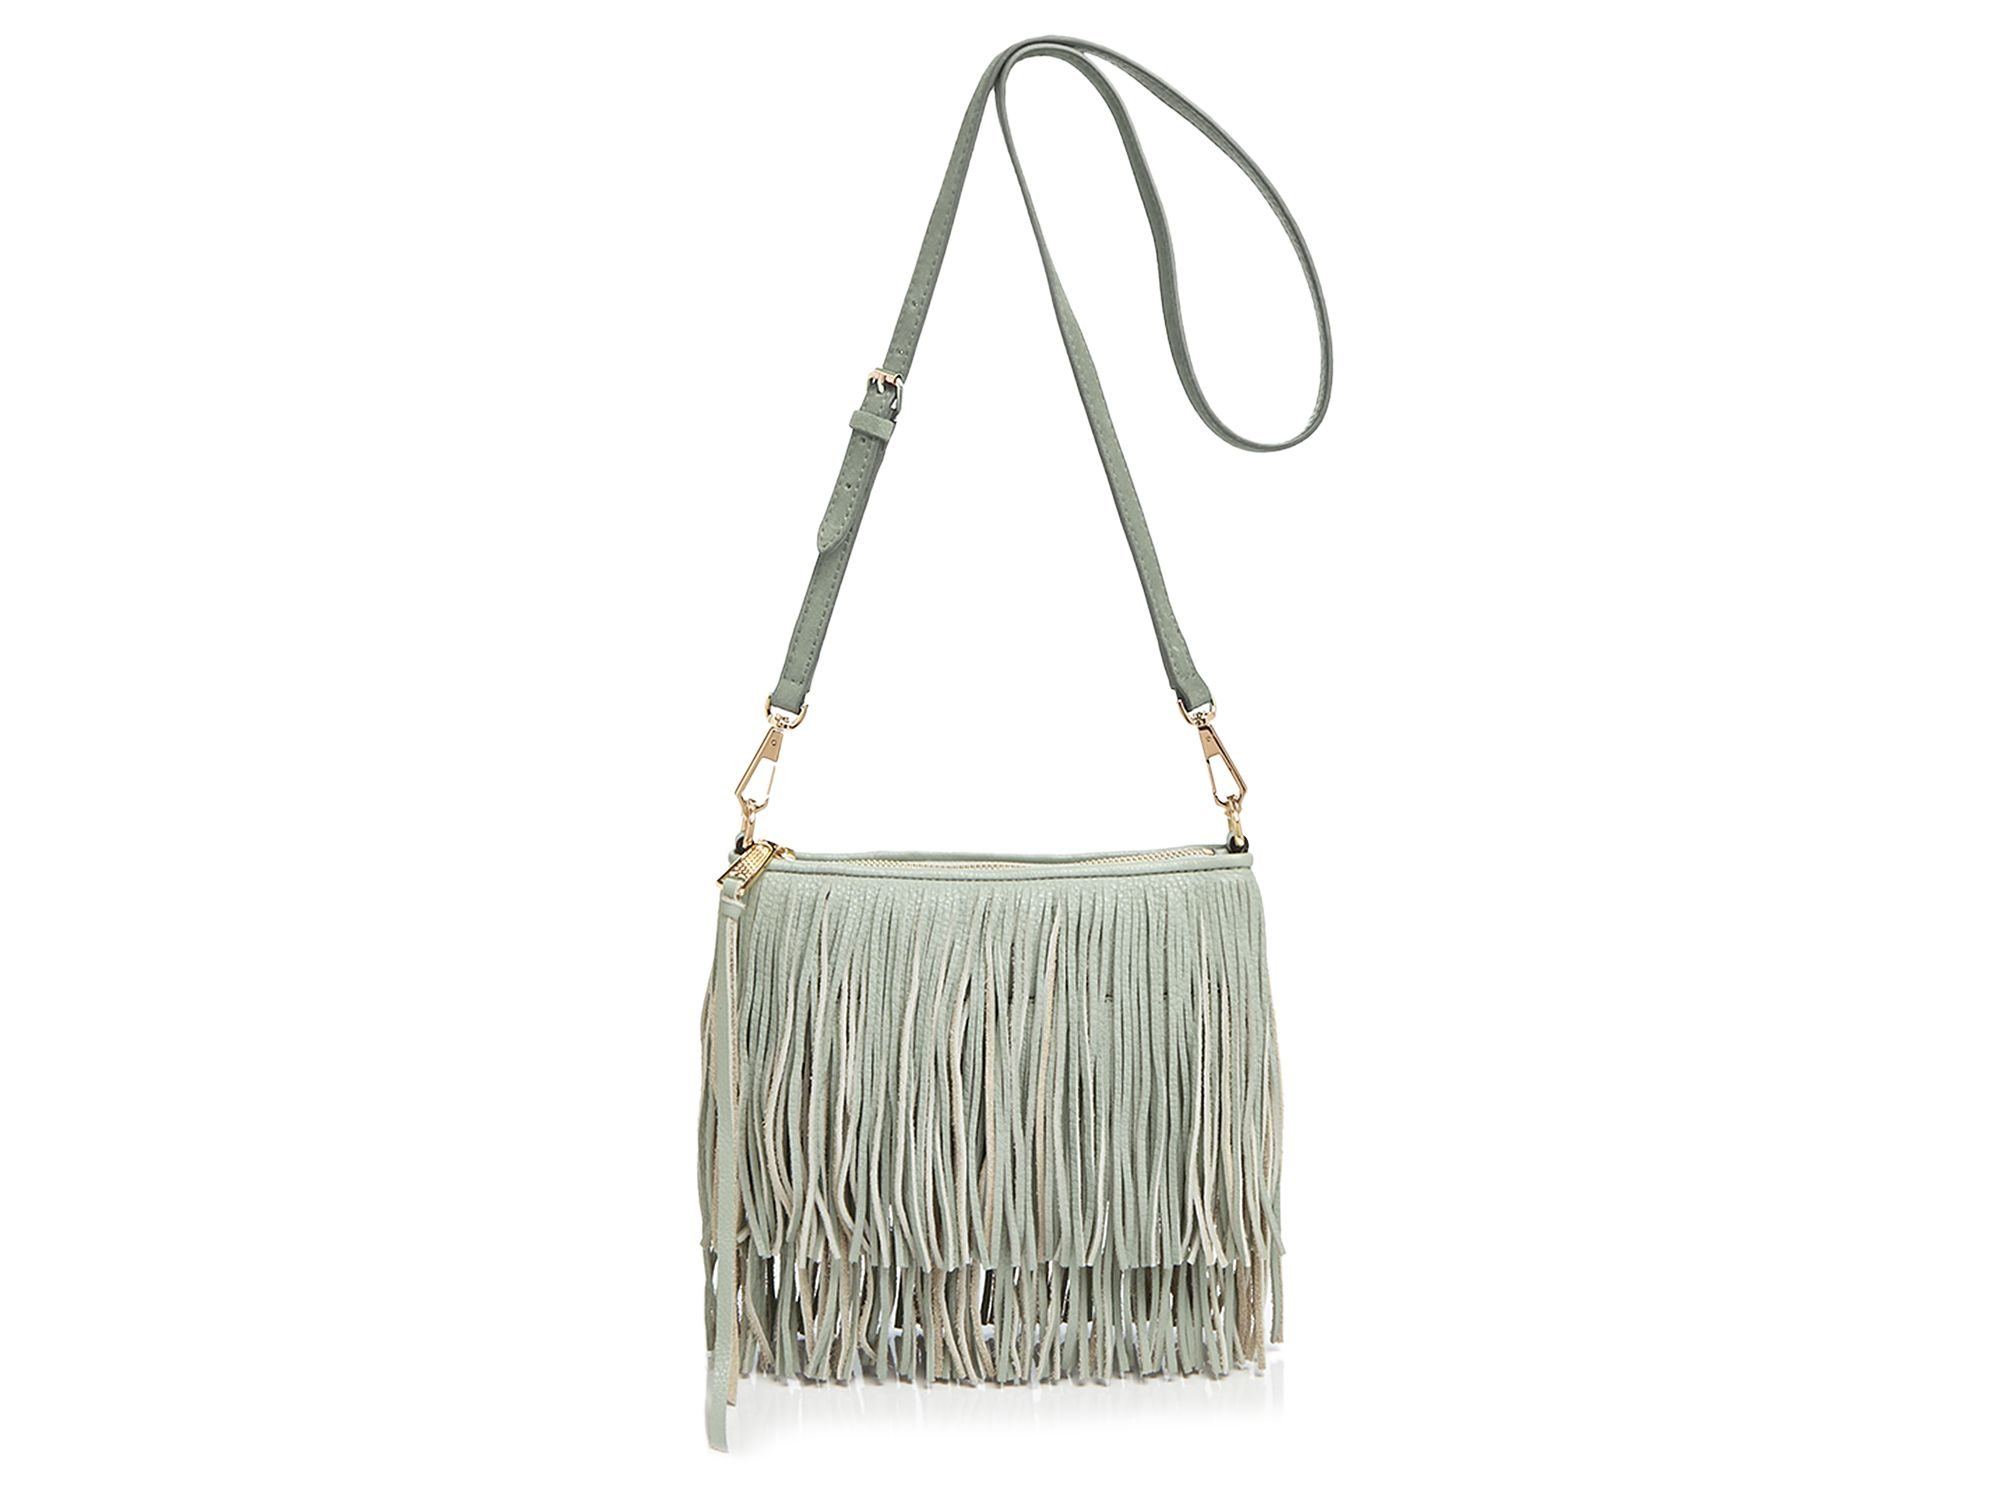 7752f7086 Gallery. Previously sold at: Bloomingdale's · Women's Fringed Bags